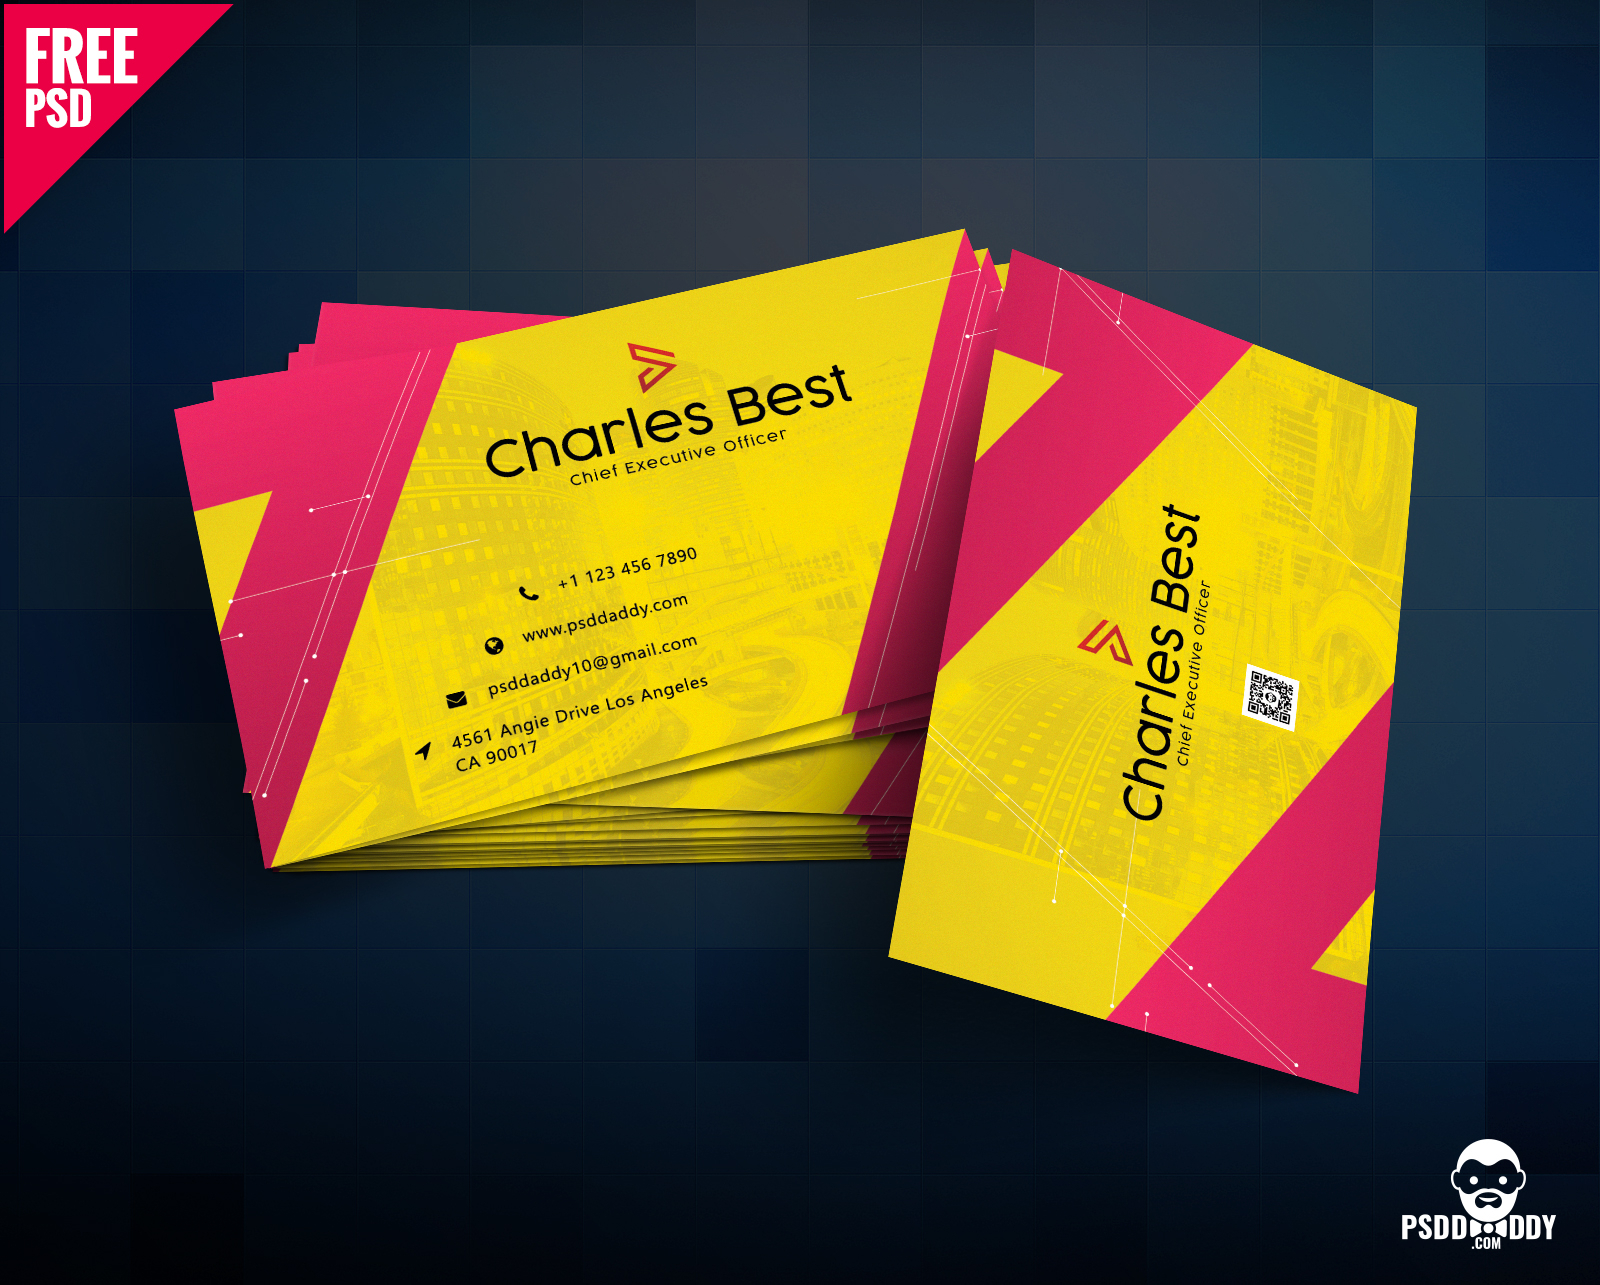 Download] Creative Business Card Free Psd   Psddaddy Throughout Business Card Maker Template